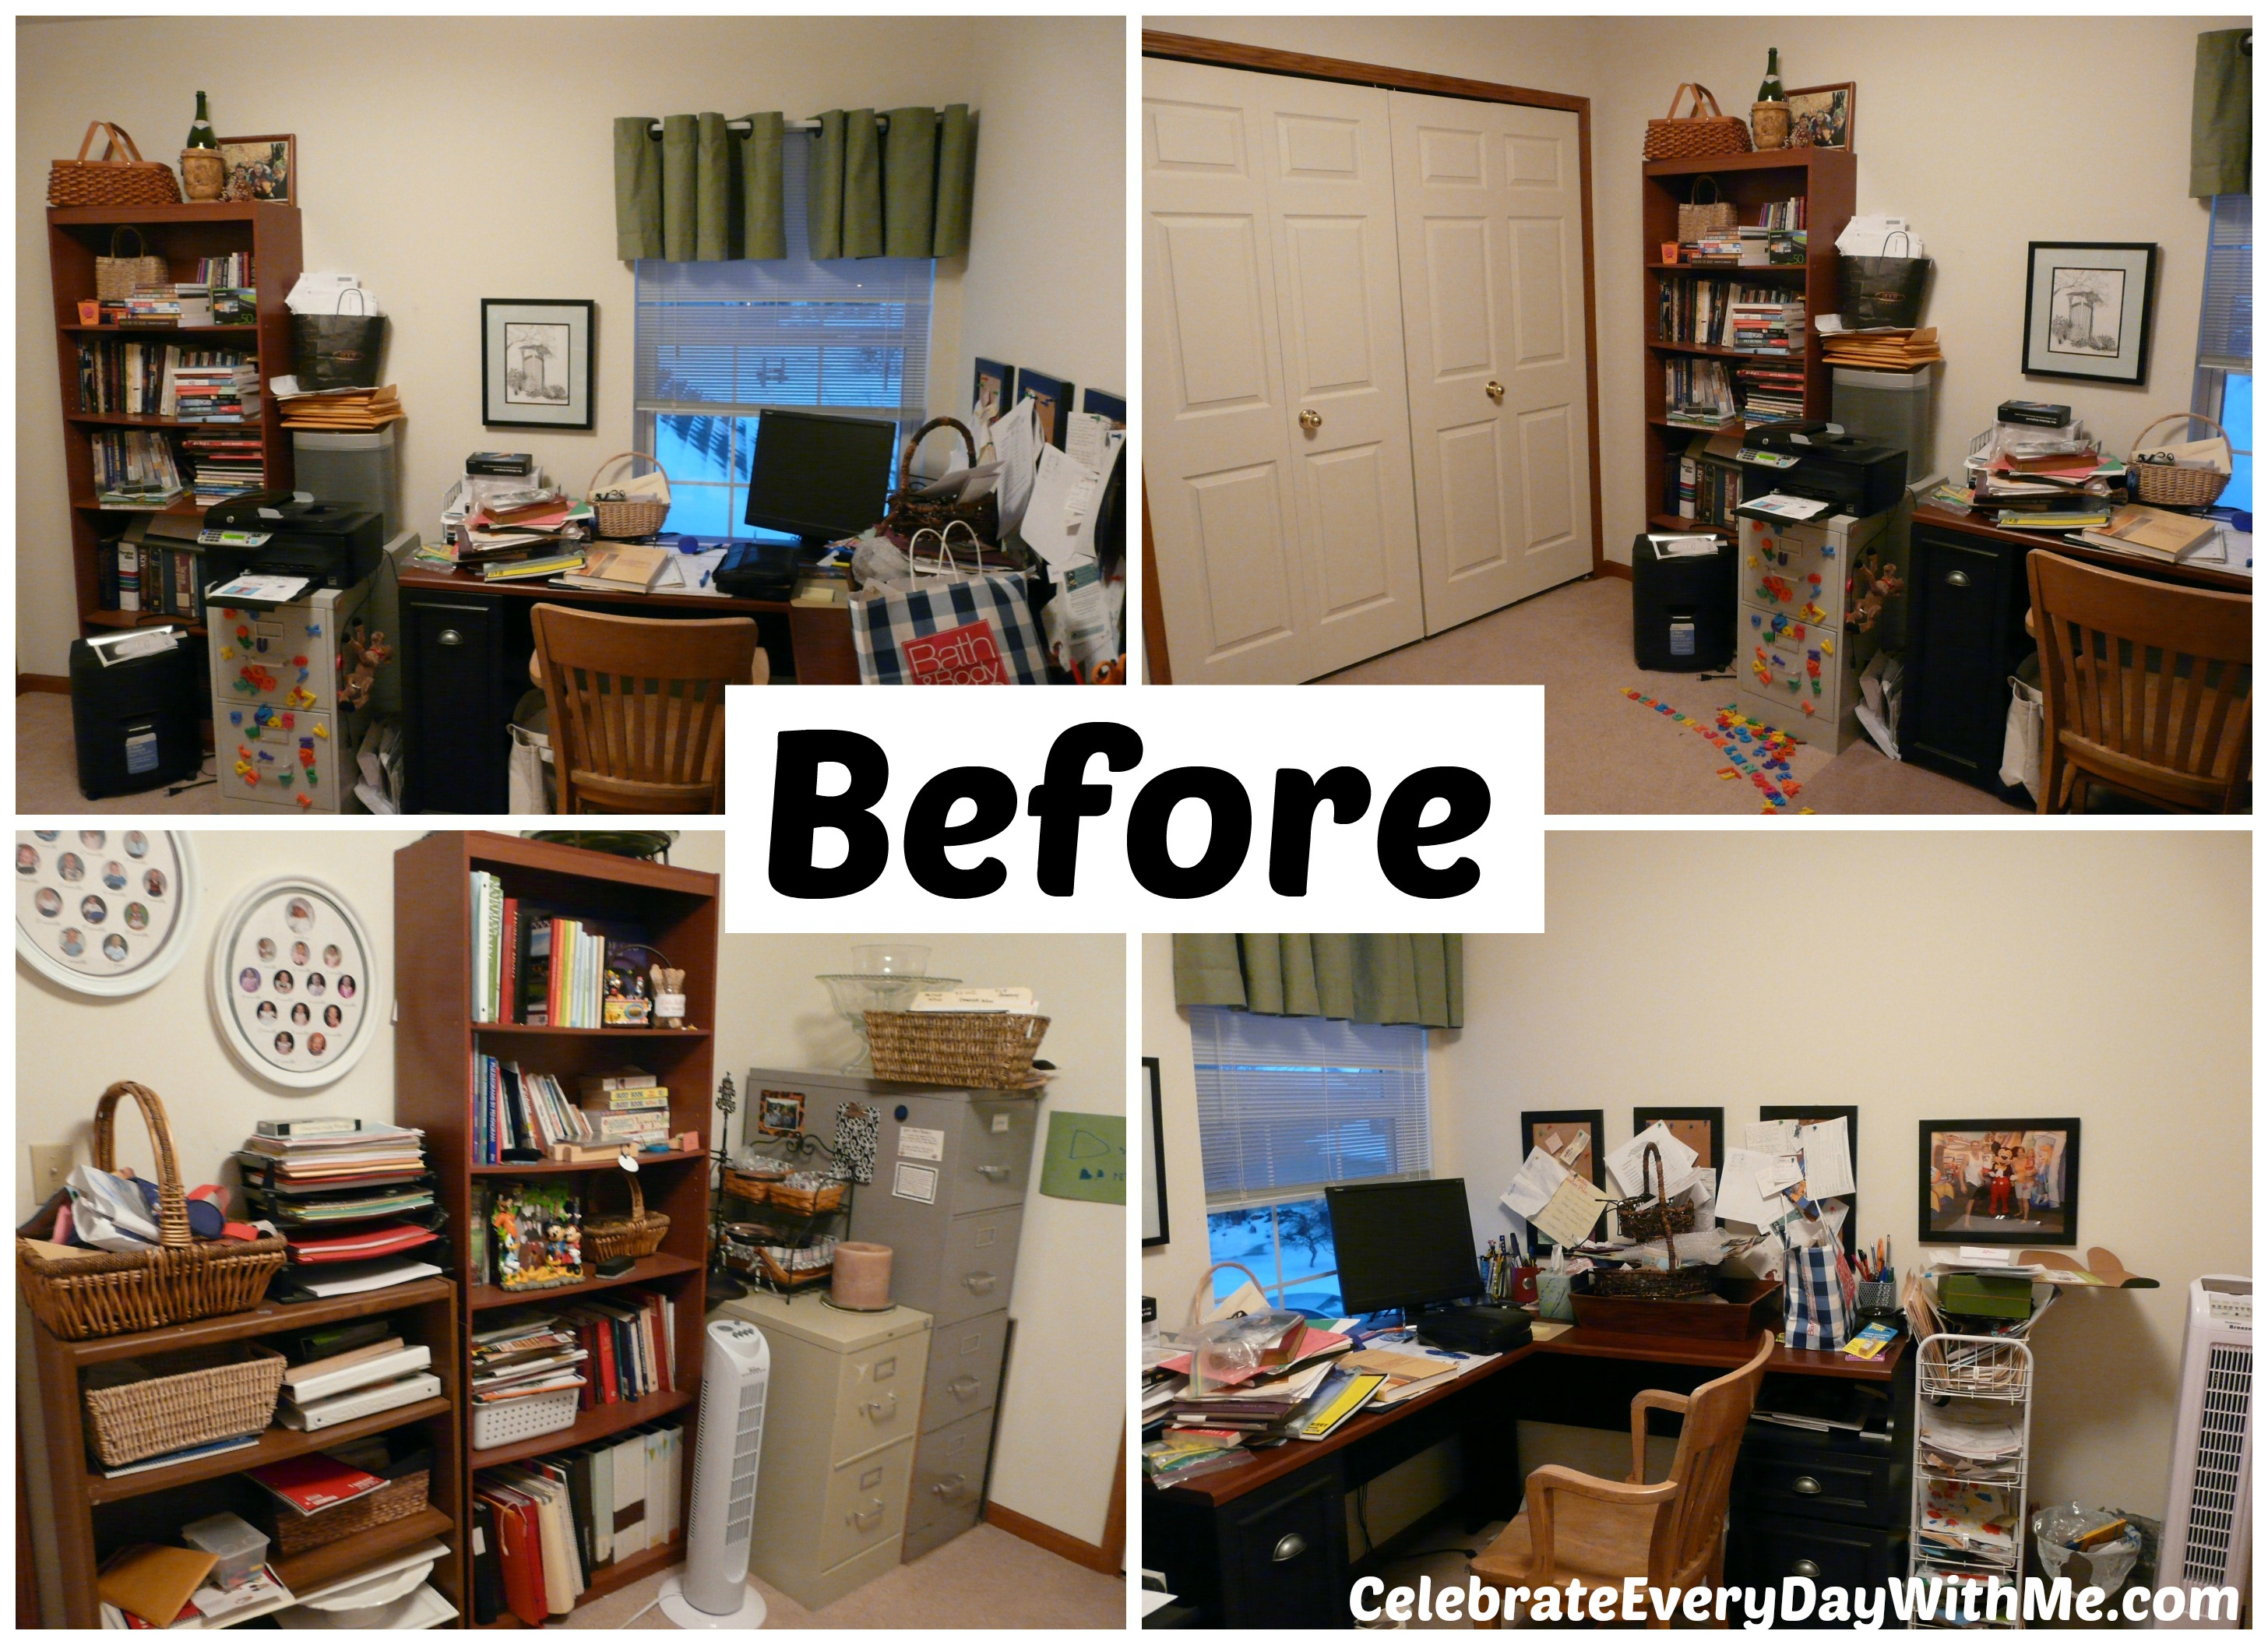 home office renovations. Home Office Renovation. Renov Collage 2 Renovation O Renovations